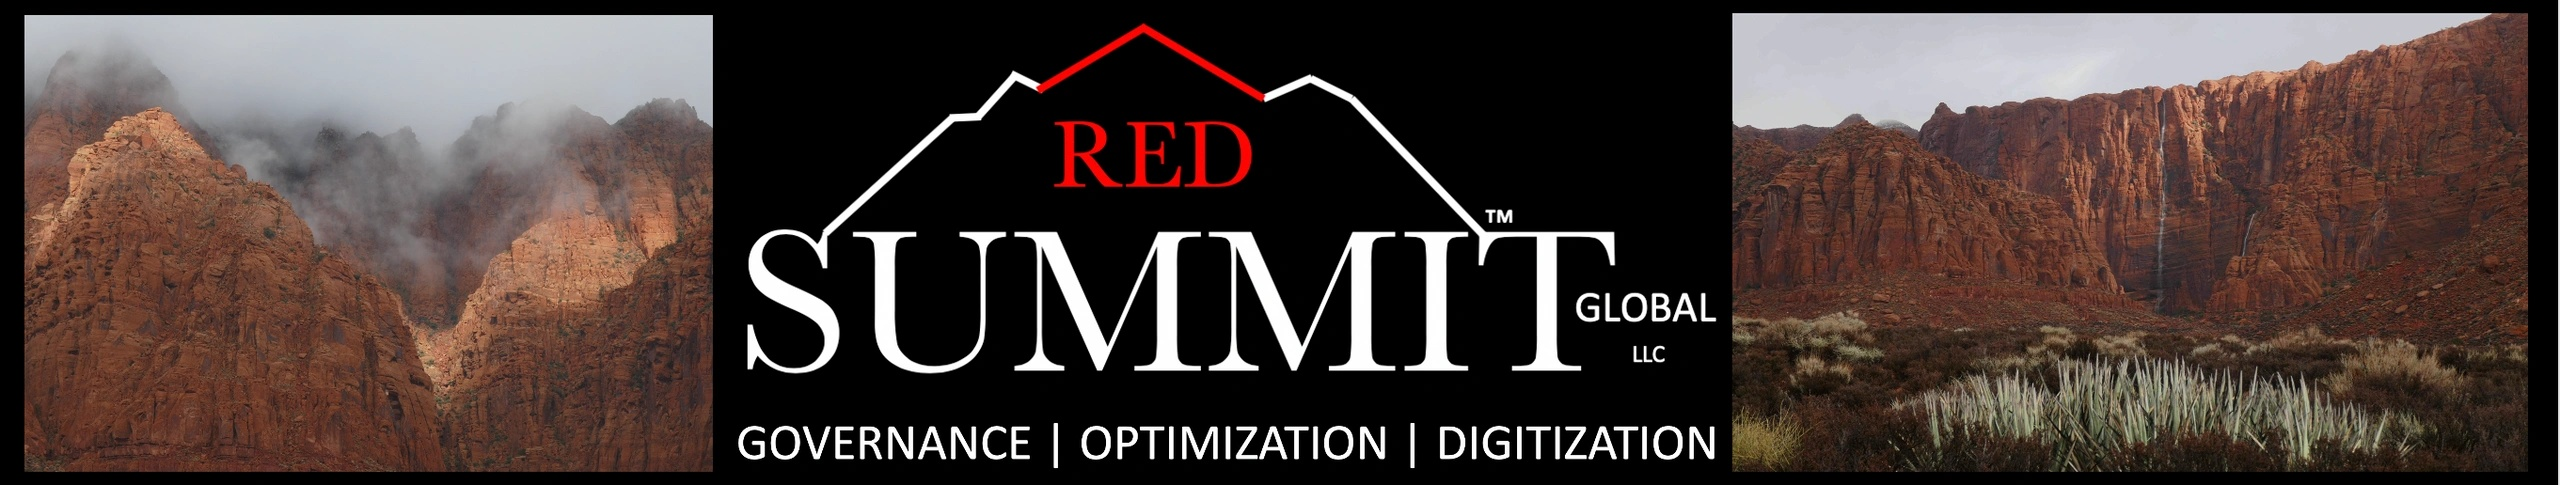 RED SUMMIT GLOBAL